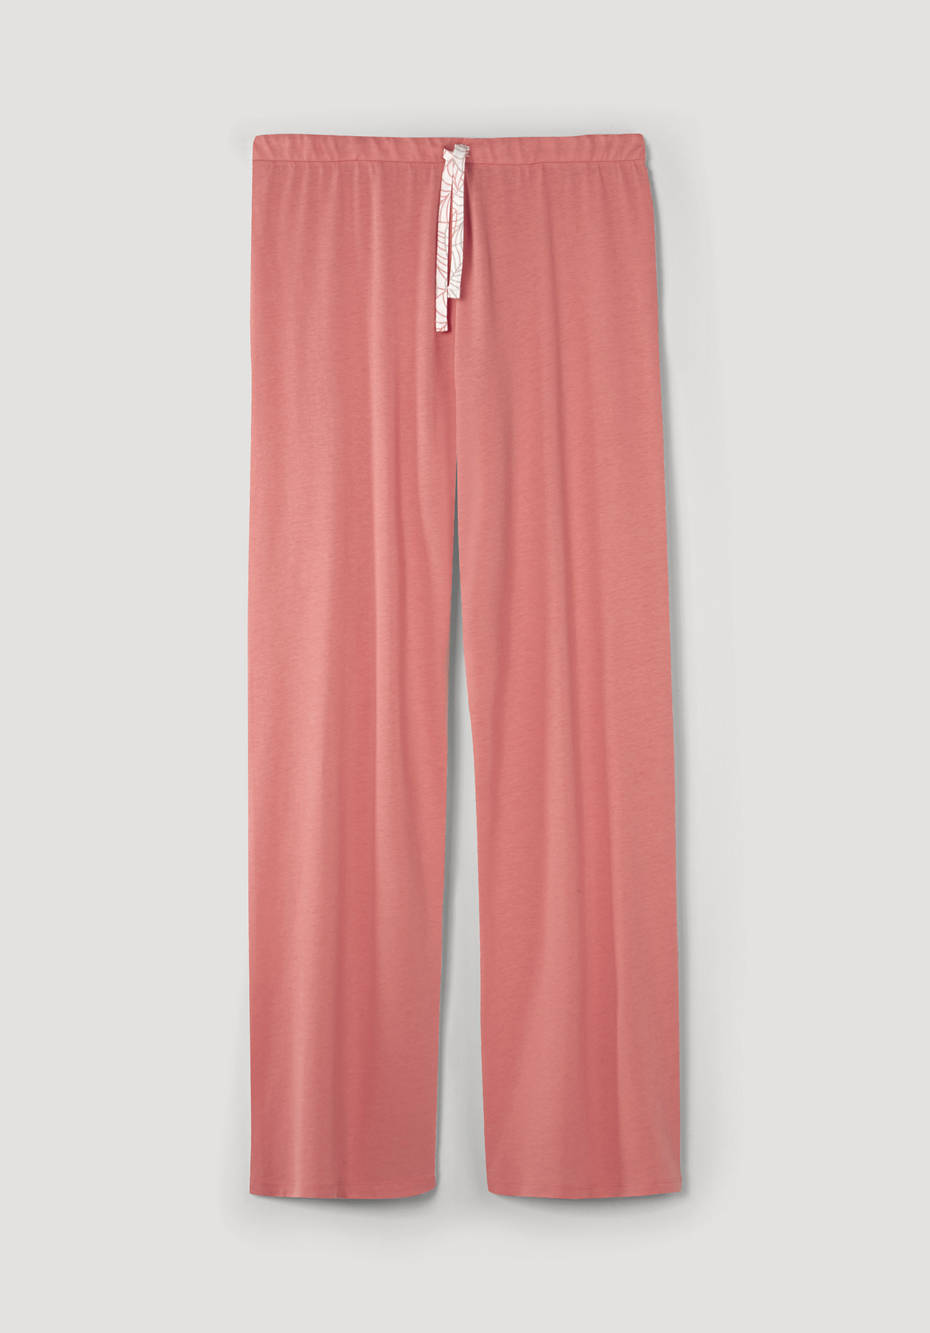 Sleep trousers made of organic cotton with silk